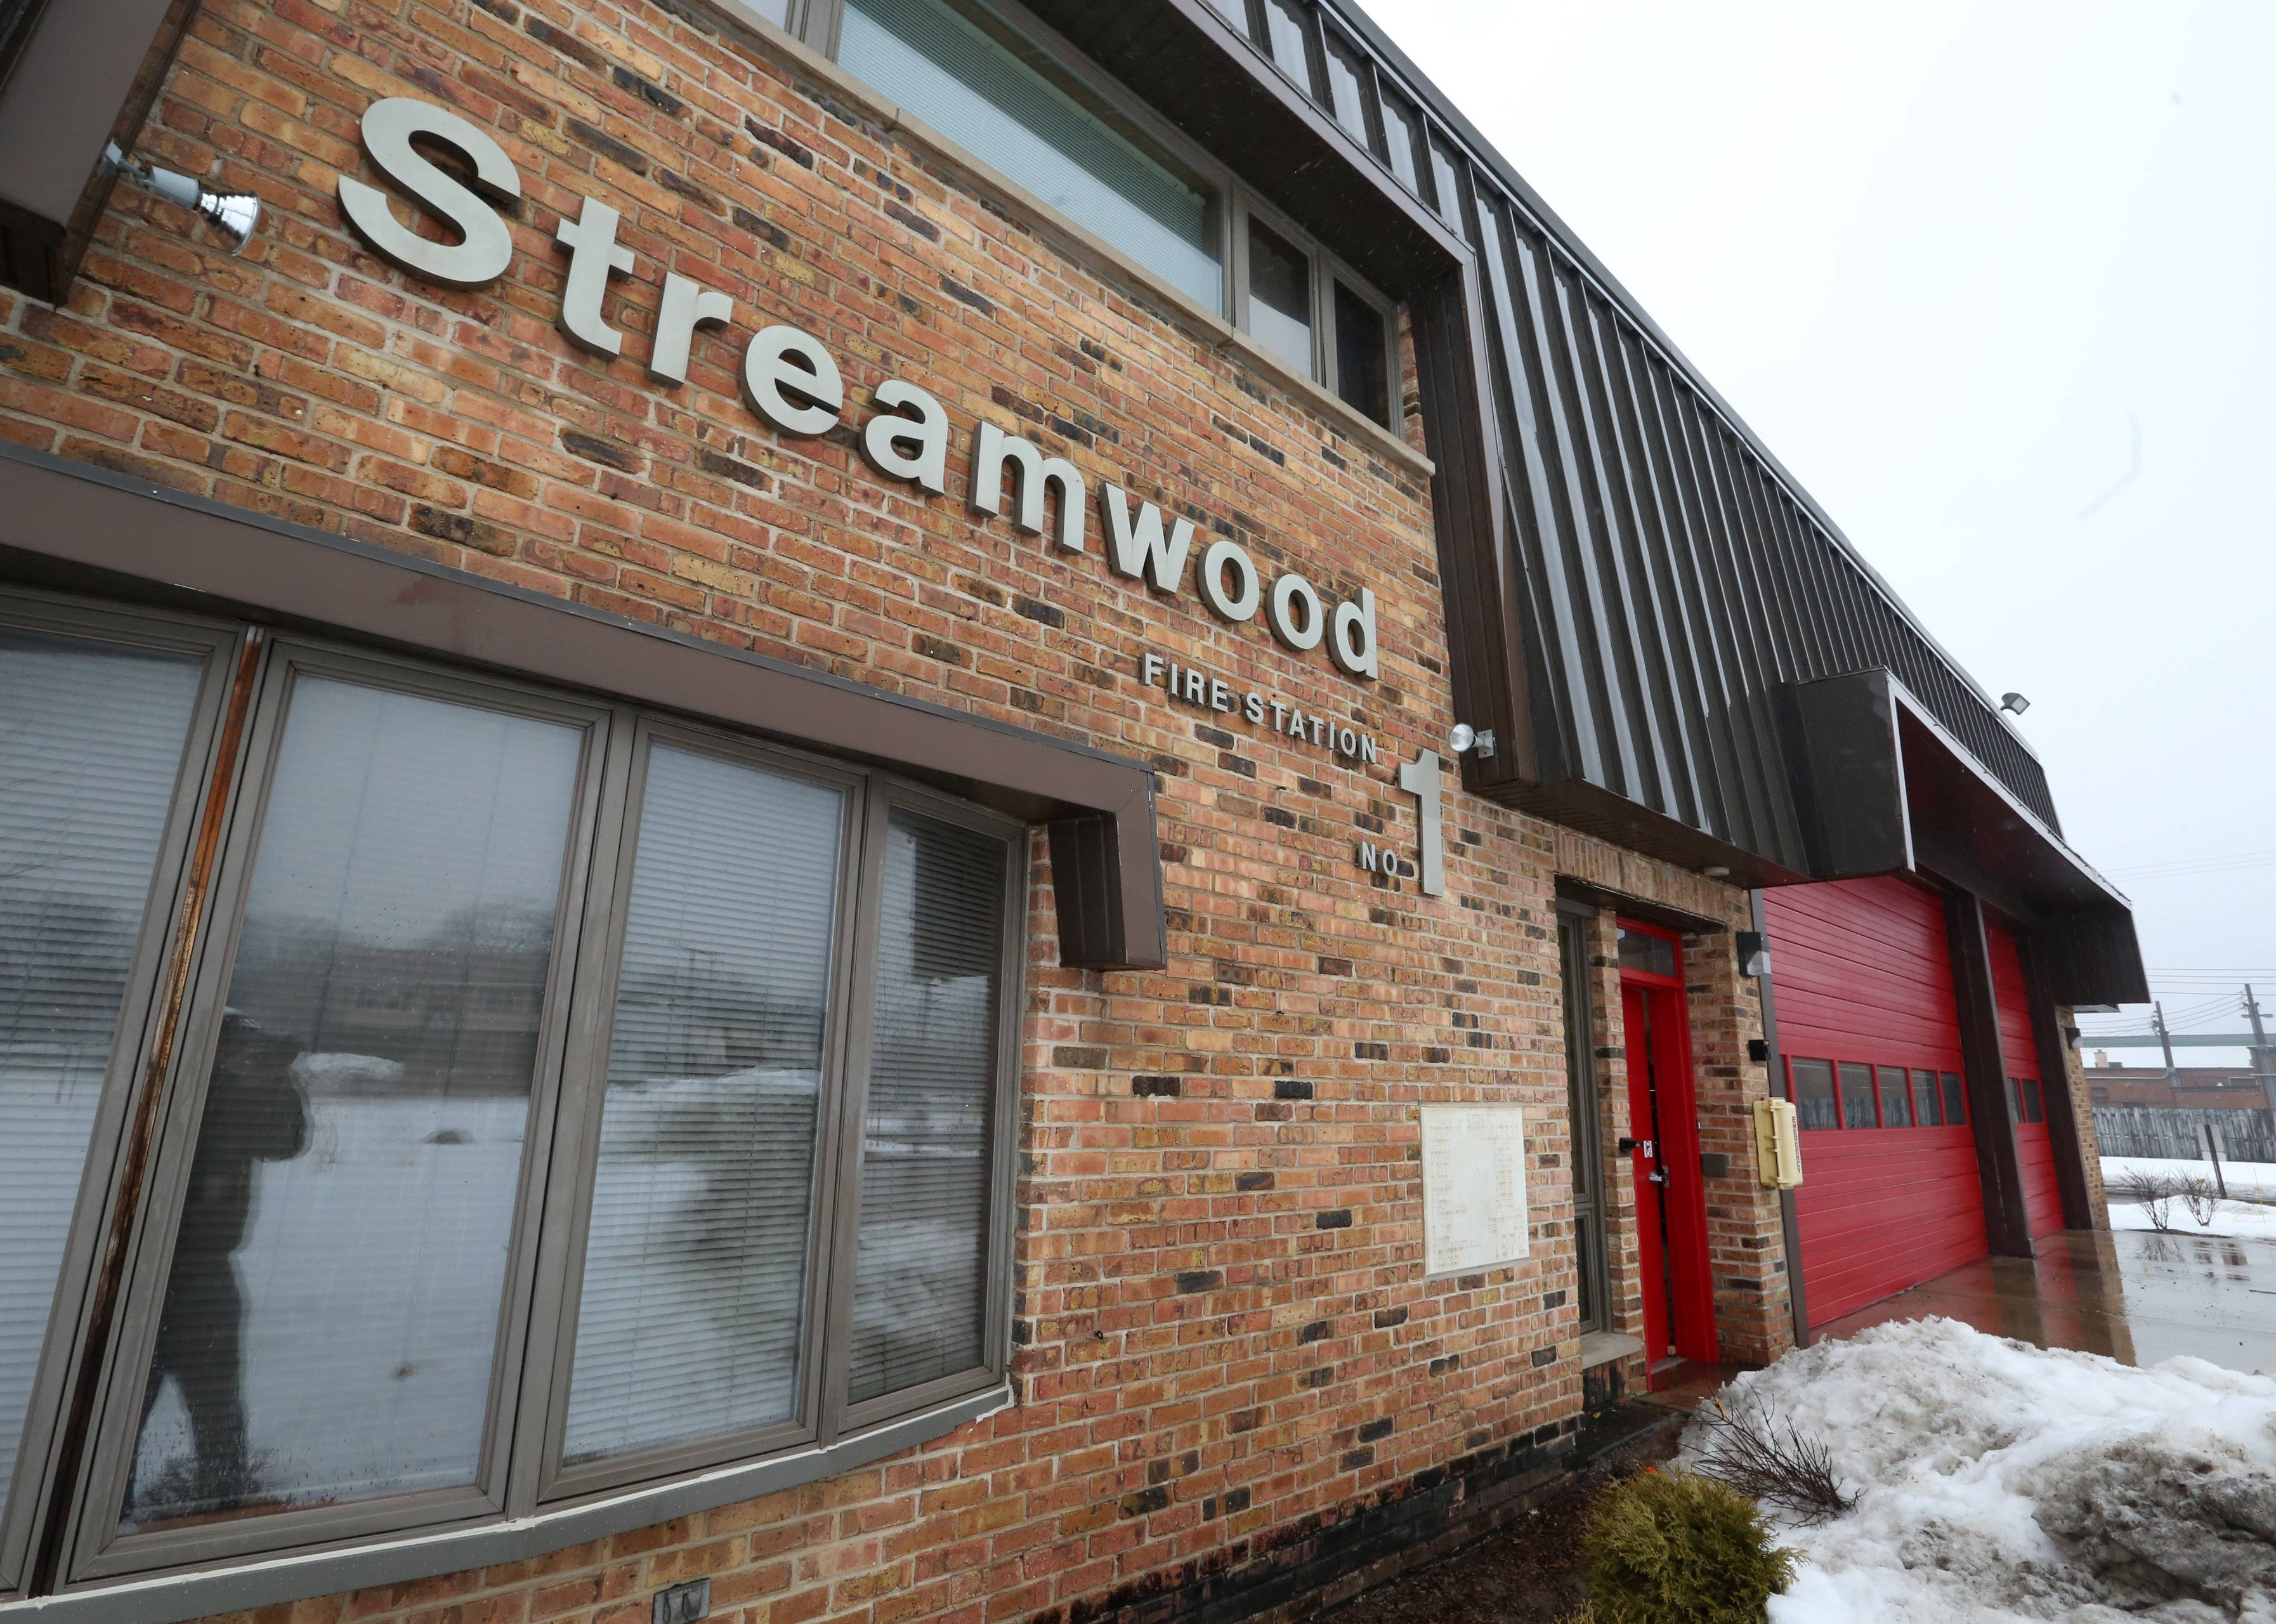 Streamwood quietly reopened its No. 1 station this week after hiring more firefighters with a federal grant.